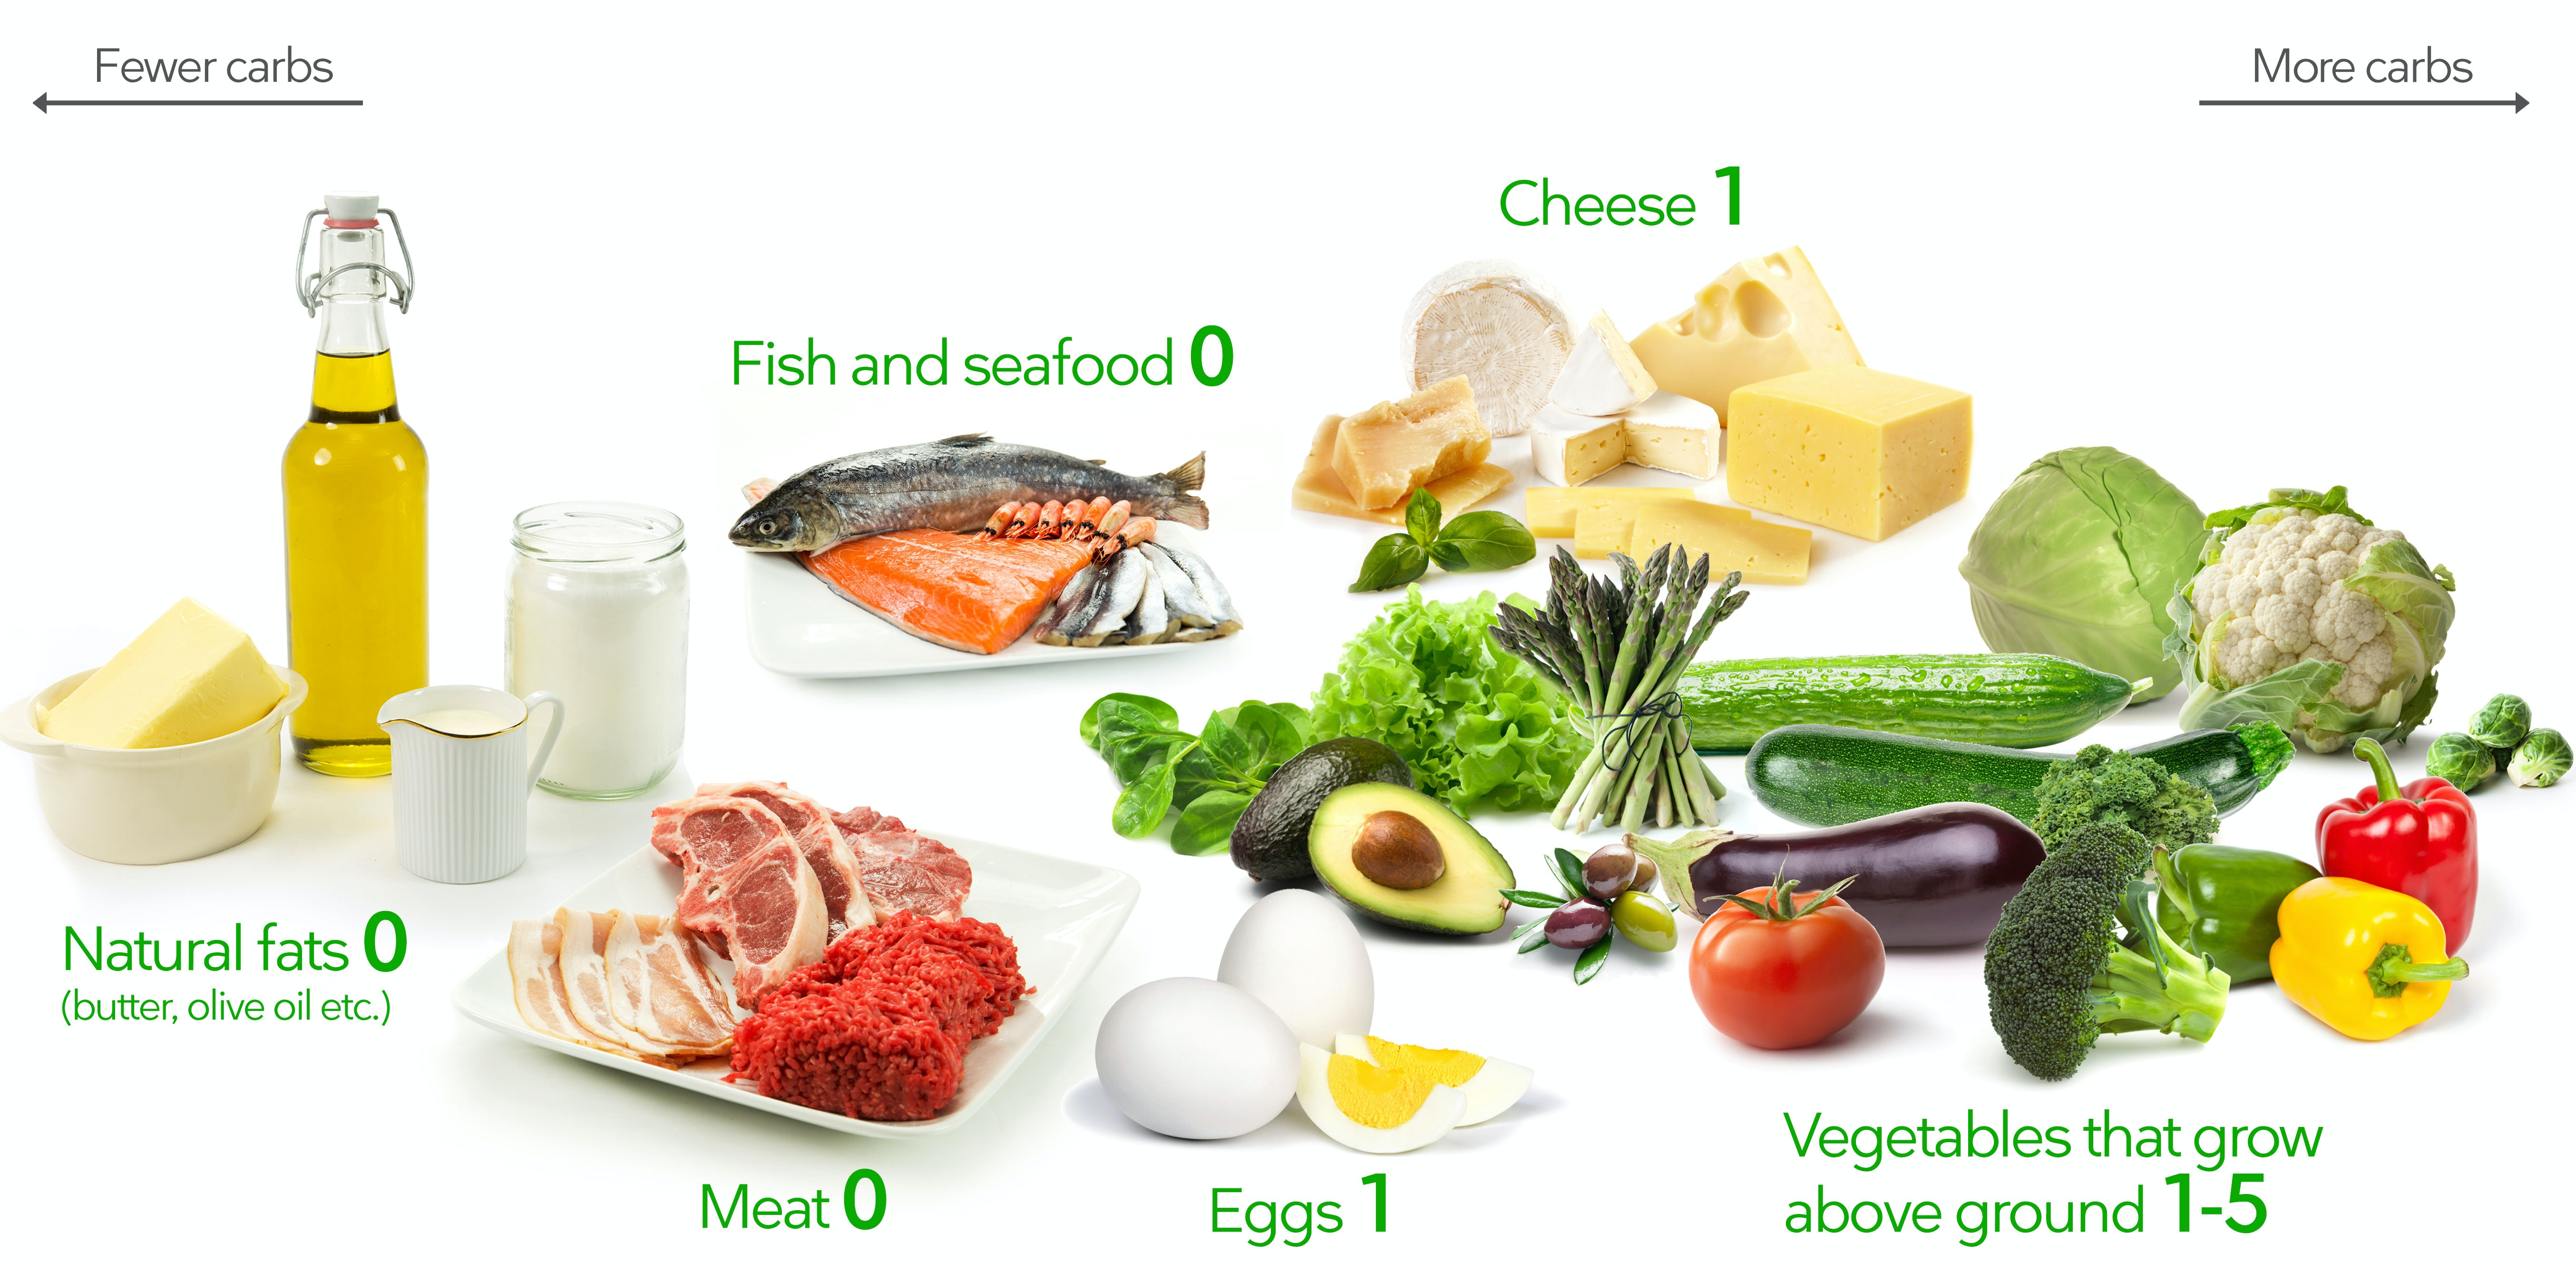 graphic about Keto Food Pyramid Printable named A Ketogenic Food plan for Newcomers The Top Keto Consultant